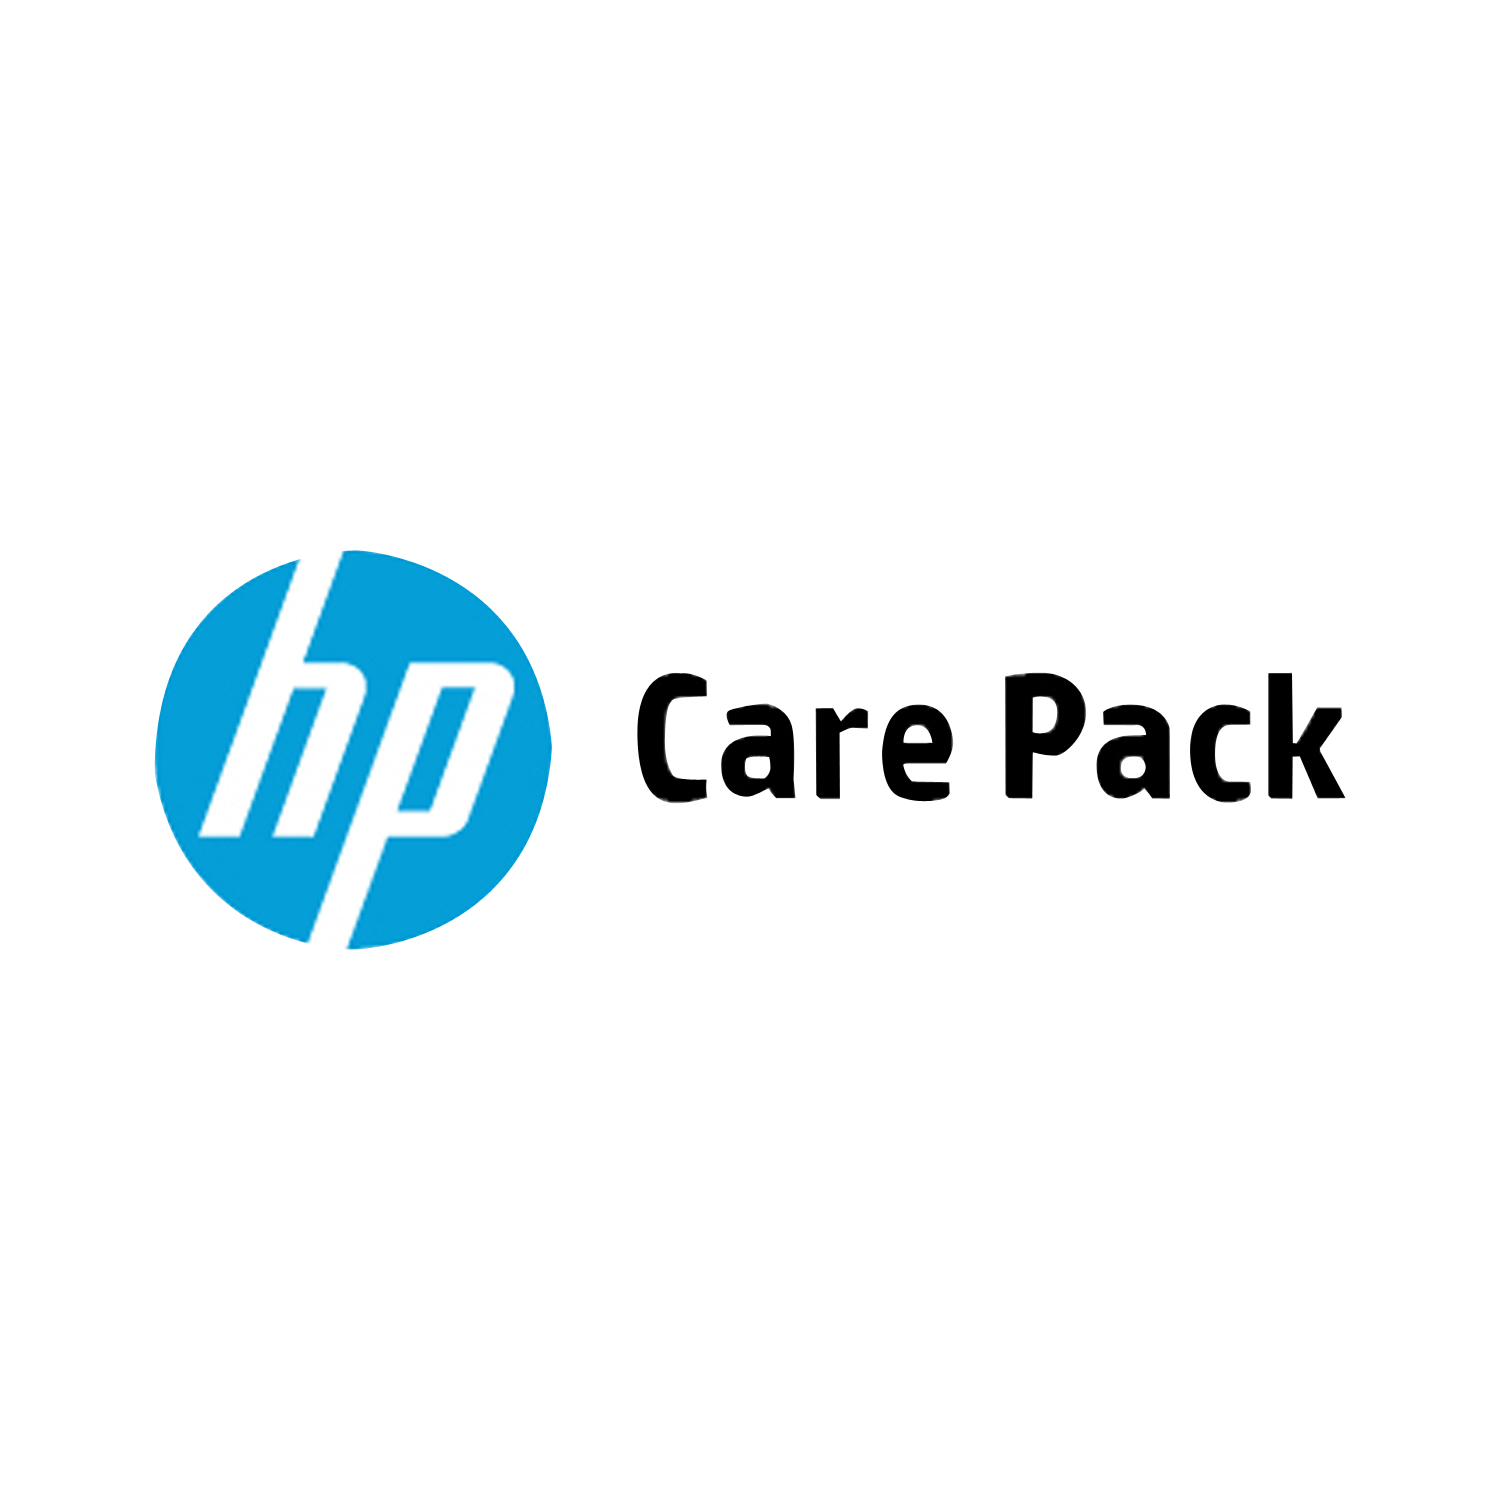 """HP 1yPW NbdandDMR Clr LsrJt CP5225 HW Supp,Color LaserJet CP5225,1 Yr Post Warranty Next Bus Day Hardware Support With Defective Media Retention. Std Bus Days/hrs, Excluding HP Holidays"" UQ4 - C2000"